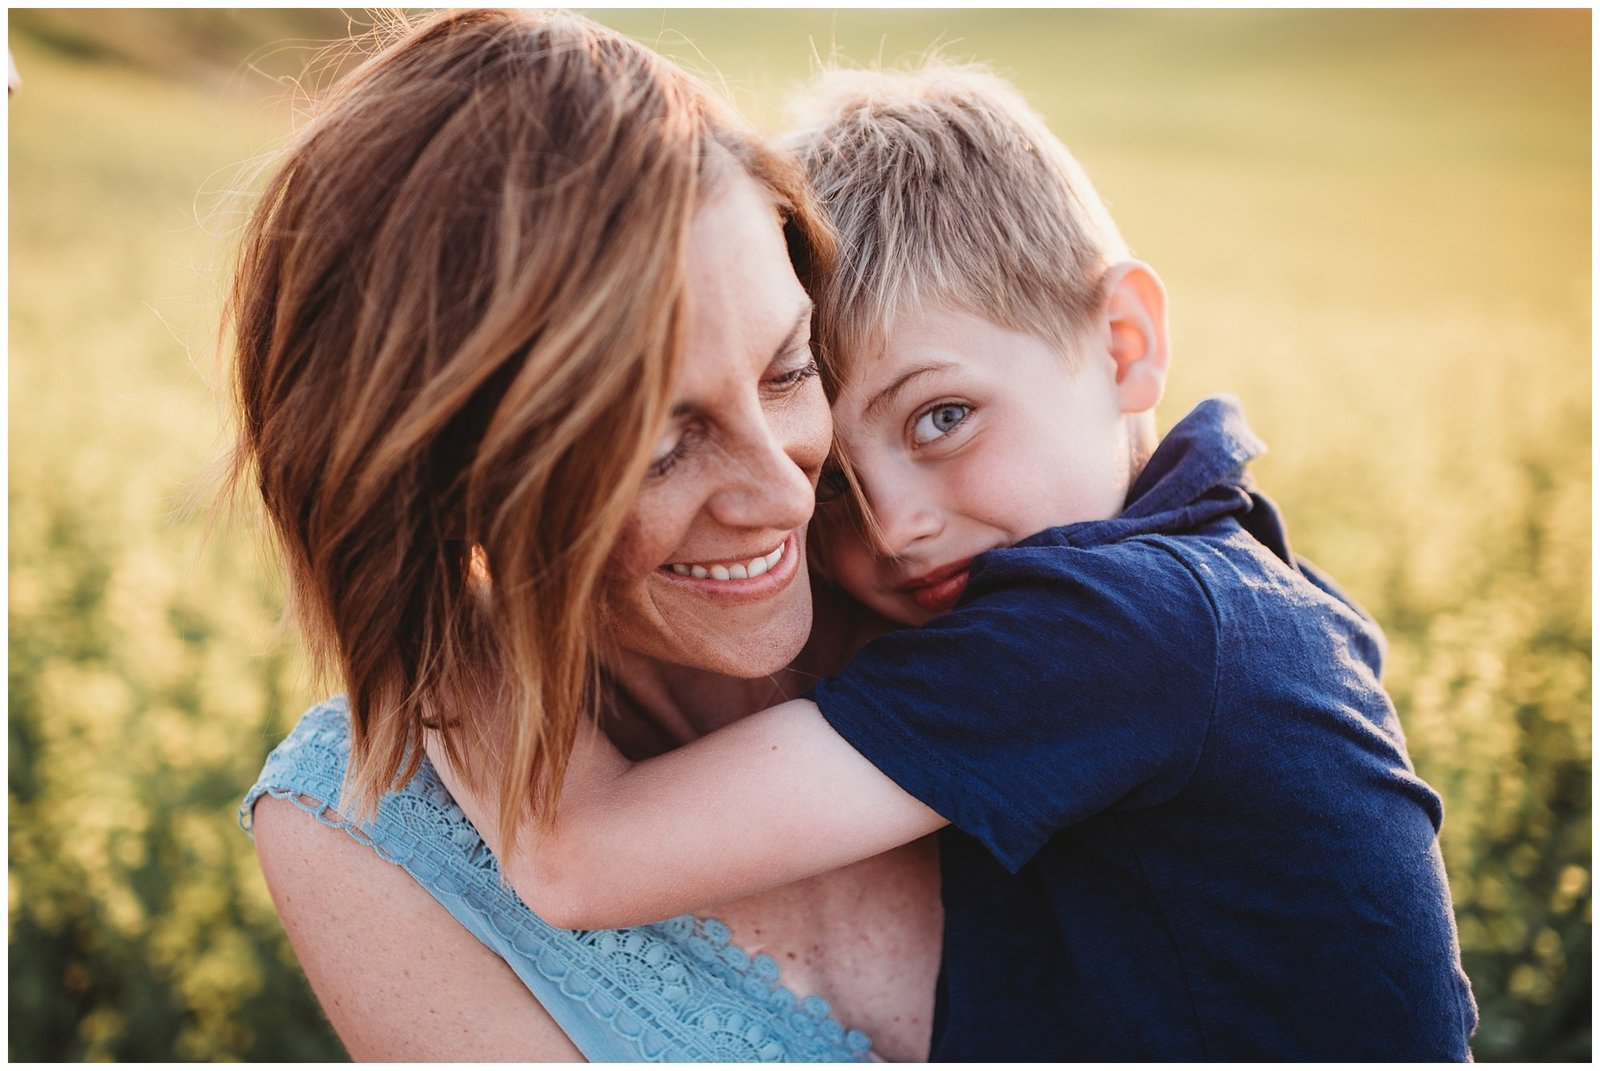 little boy hugging mom in field at sunset Emily Ann Photography Seattle Family Photographer